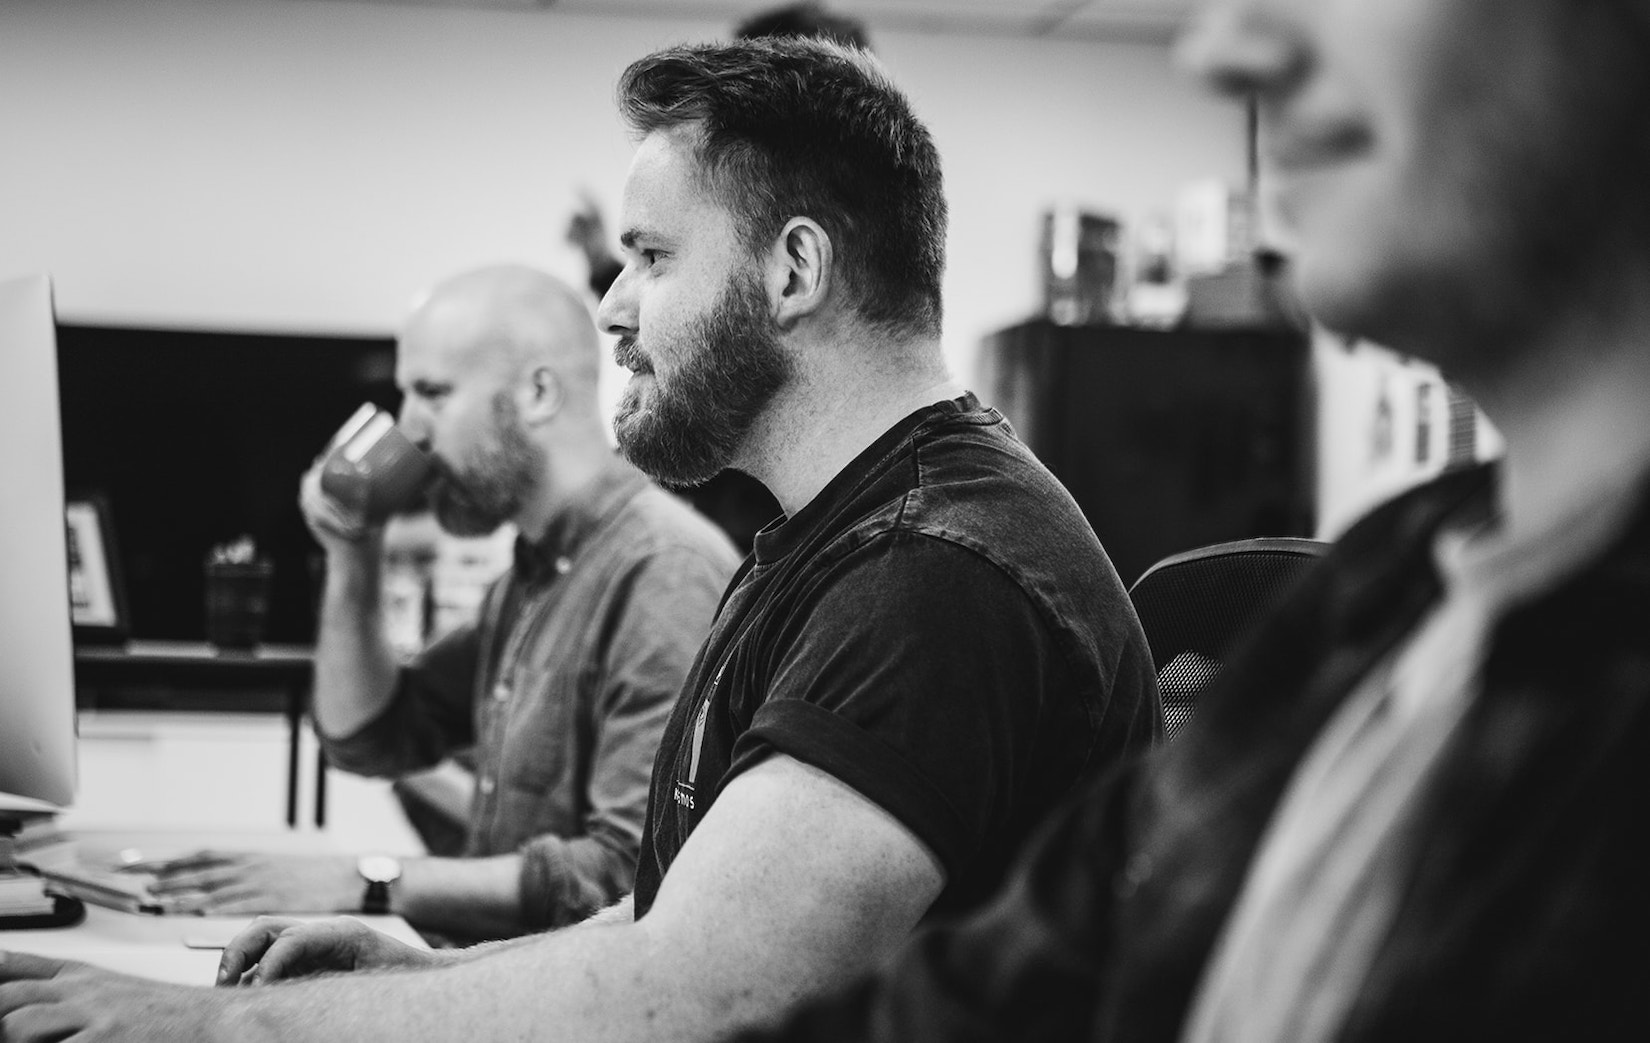 A black and white photograph of Framework's creative director working on a computer next to two other people.